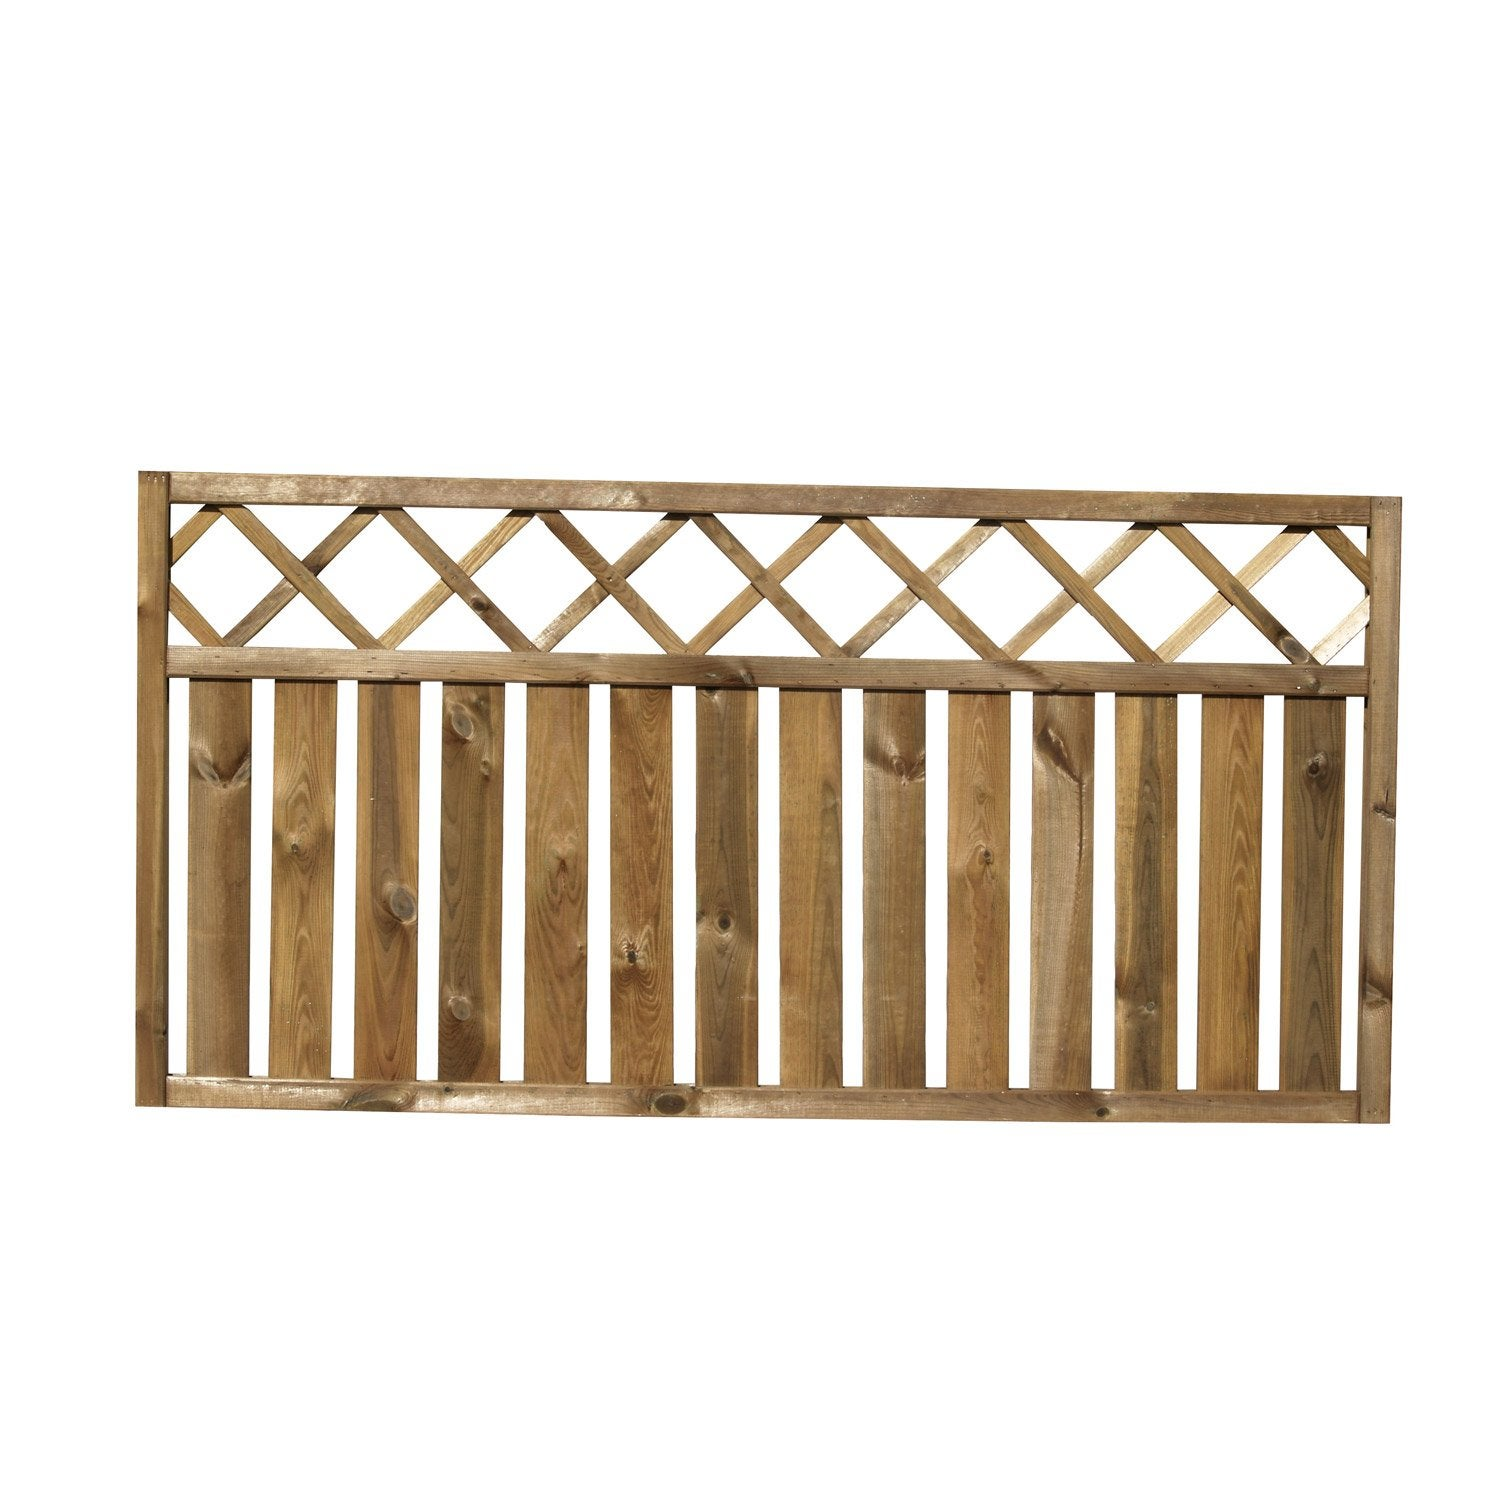 Barri re bois pinto naturel x cm leroy merlin for Bois pour barriere exterieur